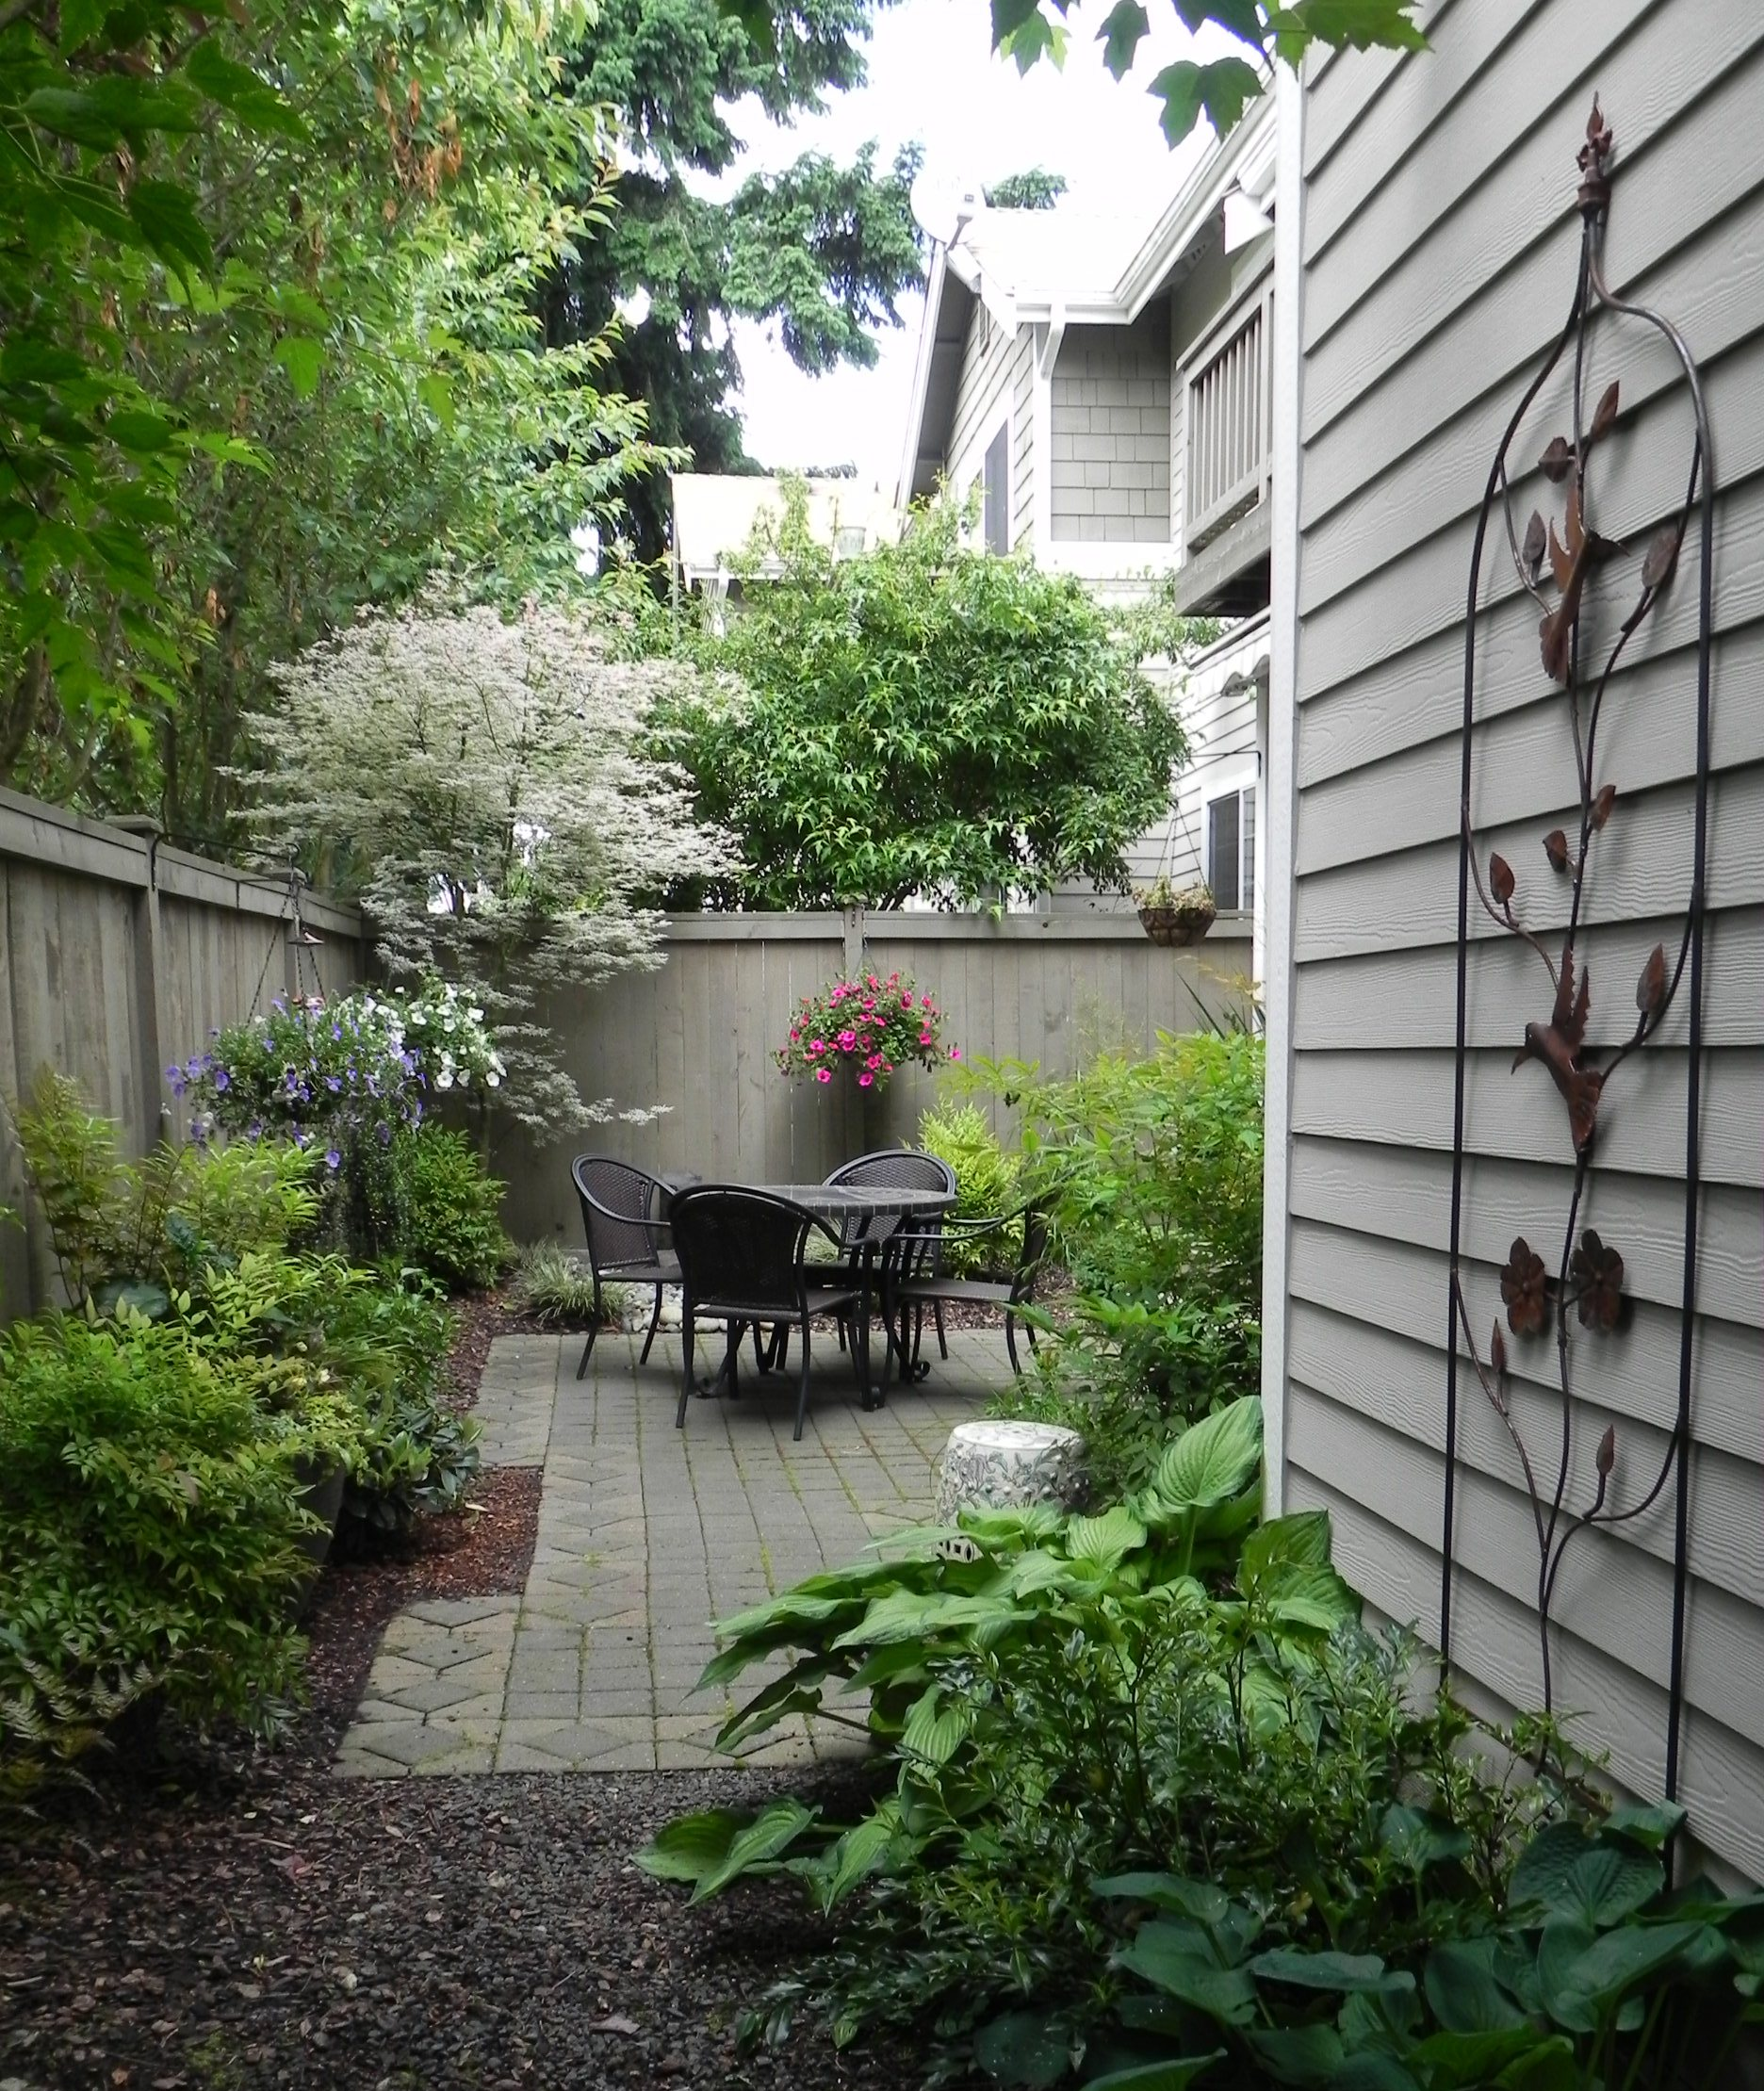 25 landscape design for small spaces Small backyard garden design